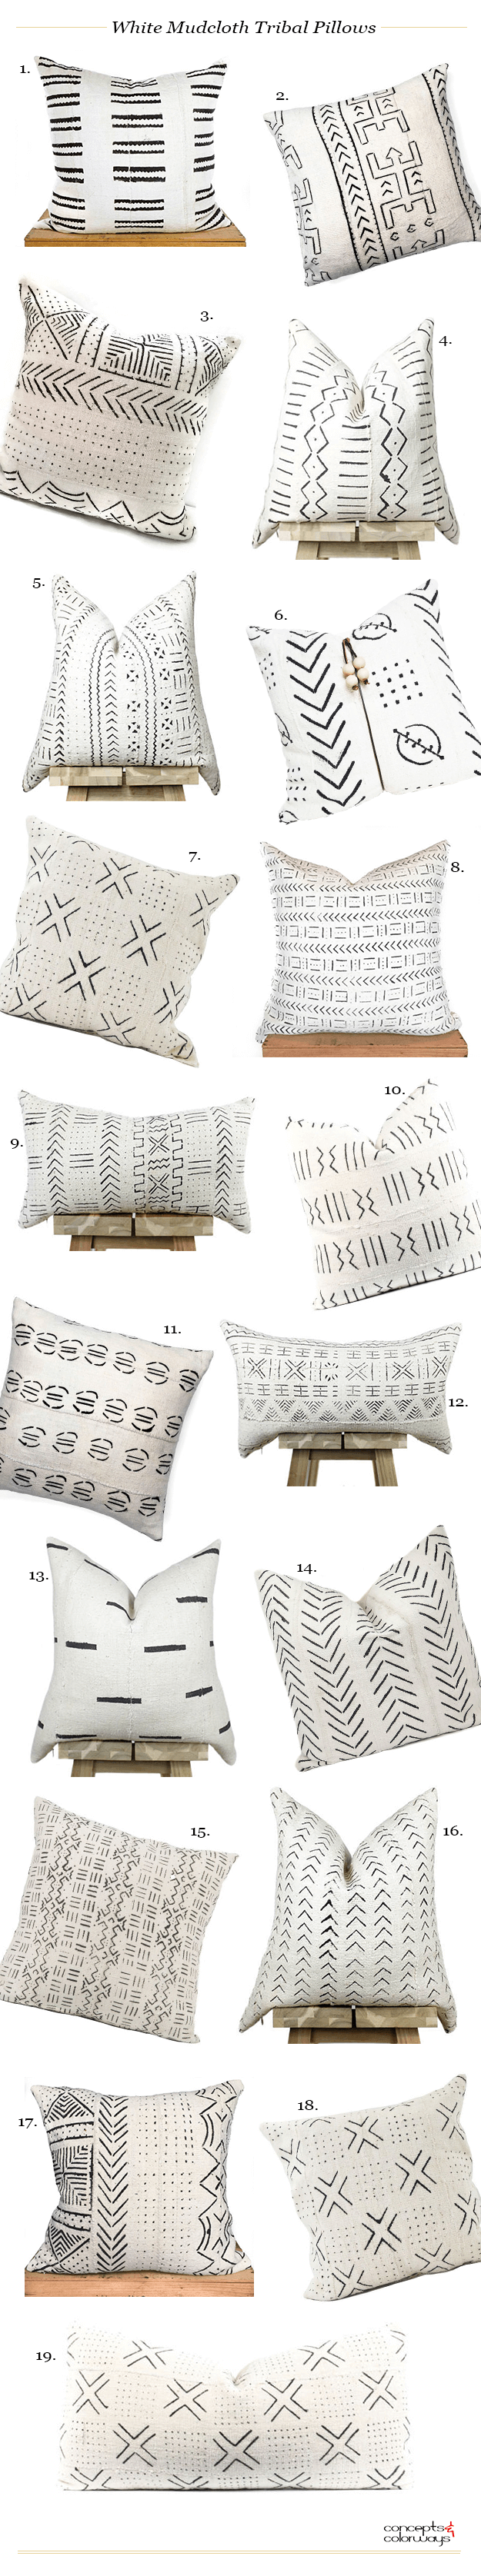 white african mudcloth tribal pillows product roundup